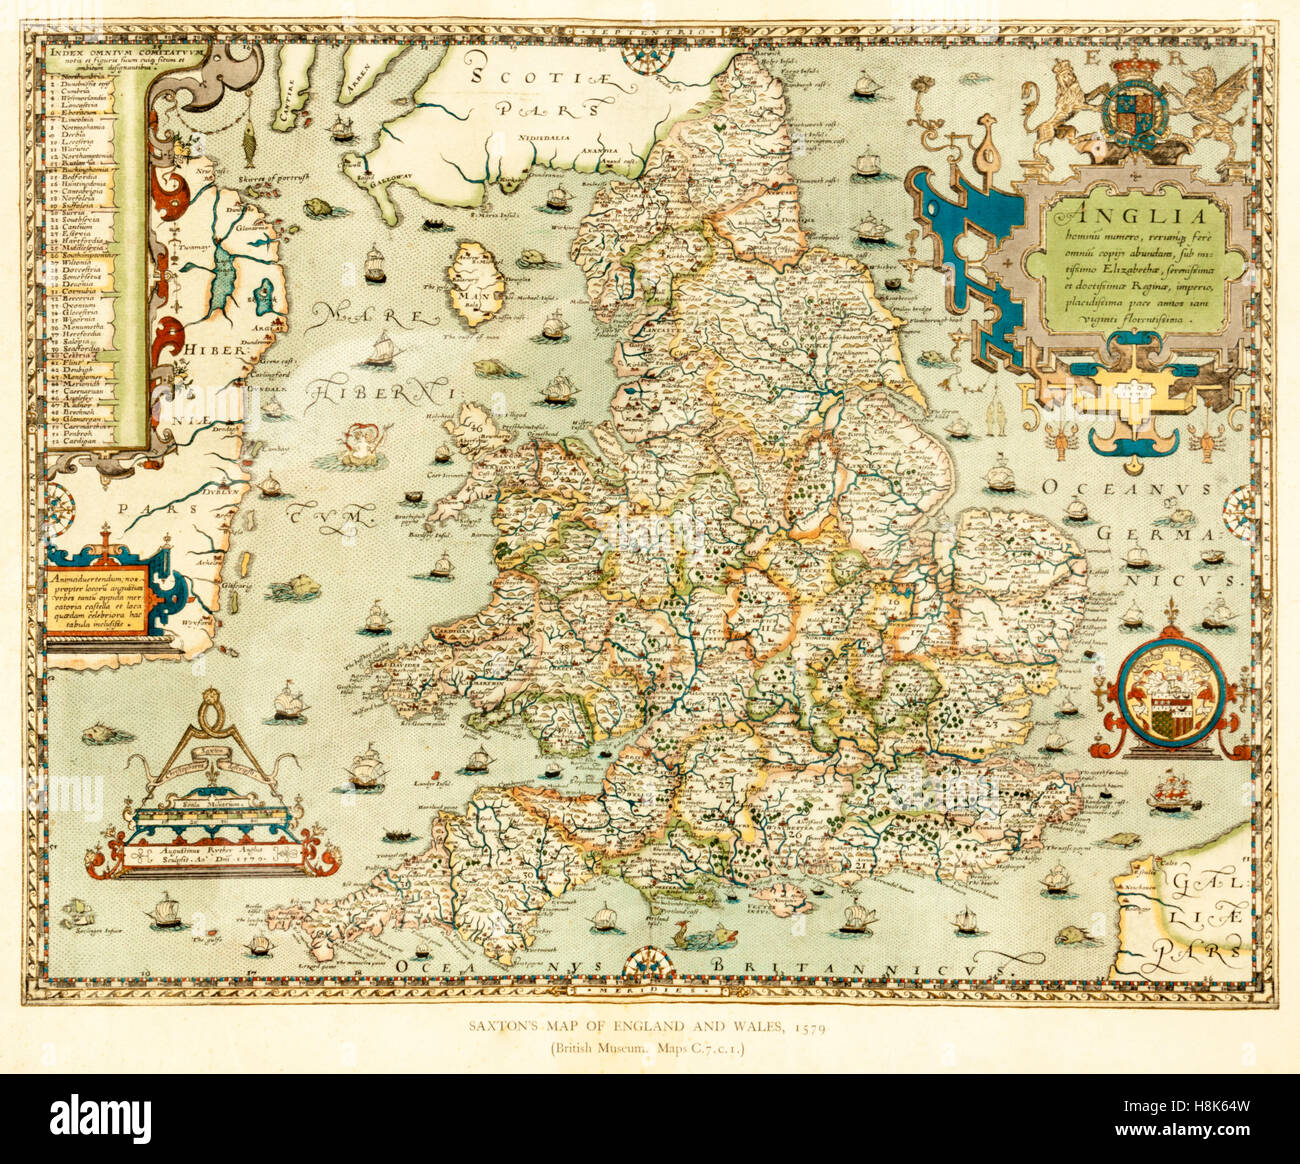 Detailed Map Of England Counties.Great Britain Map Counties Stock Photos Great Britain Map Counties